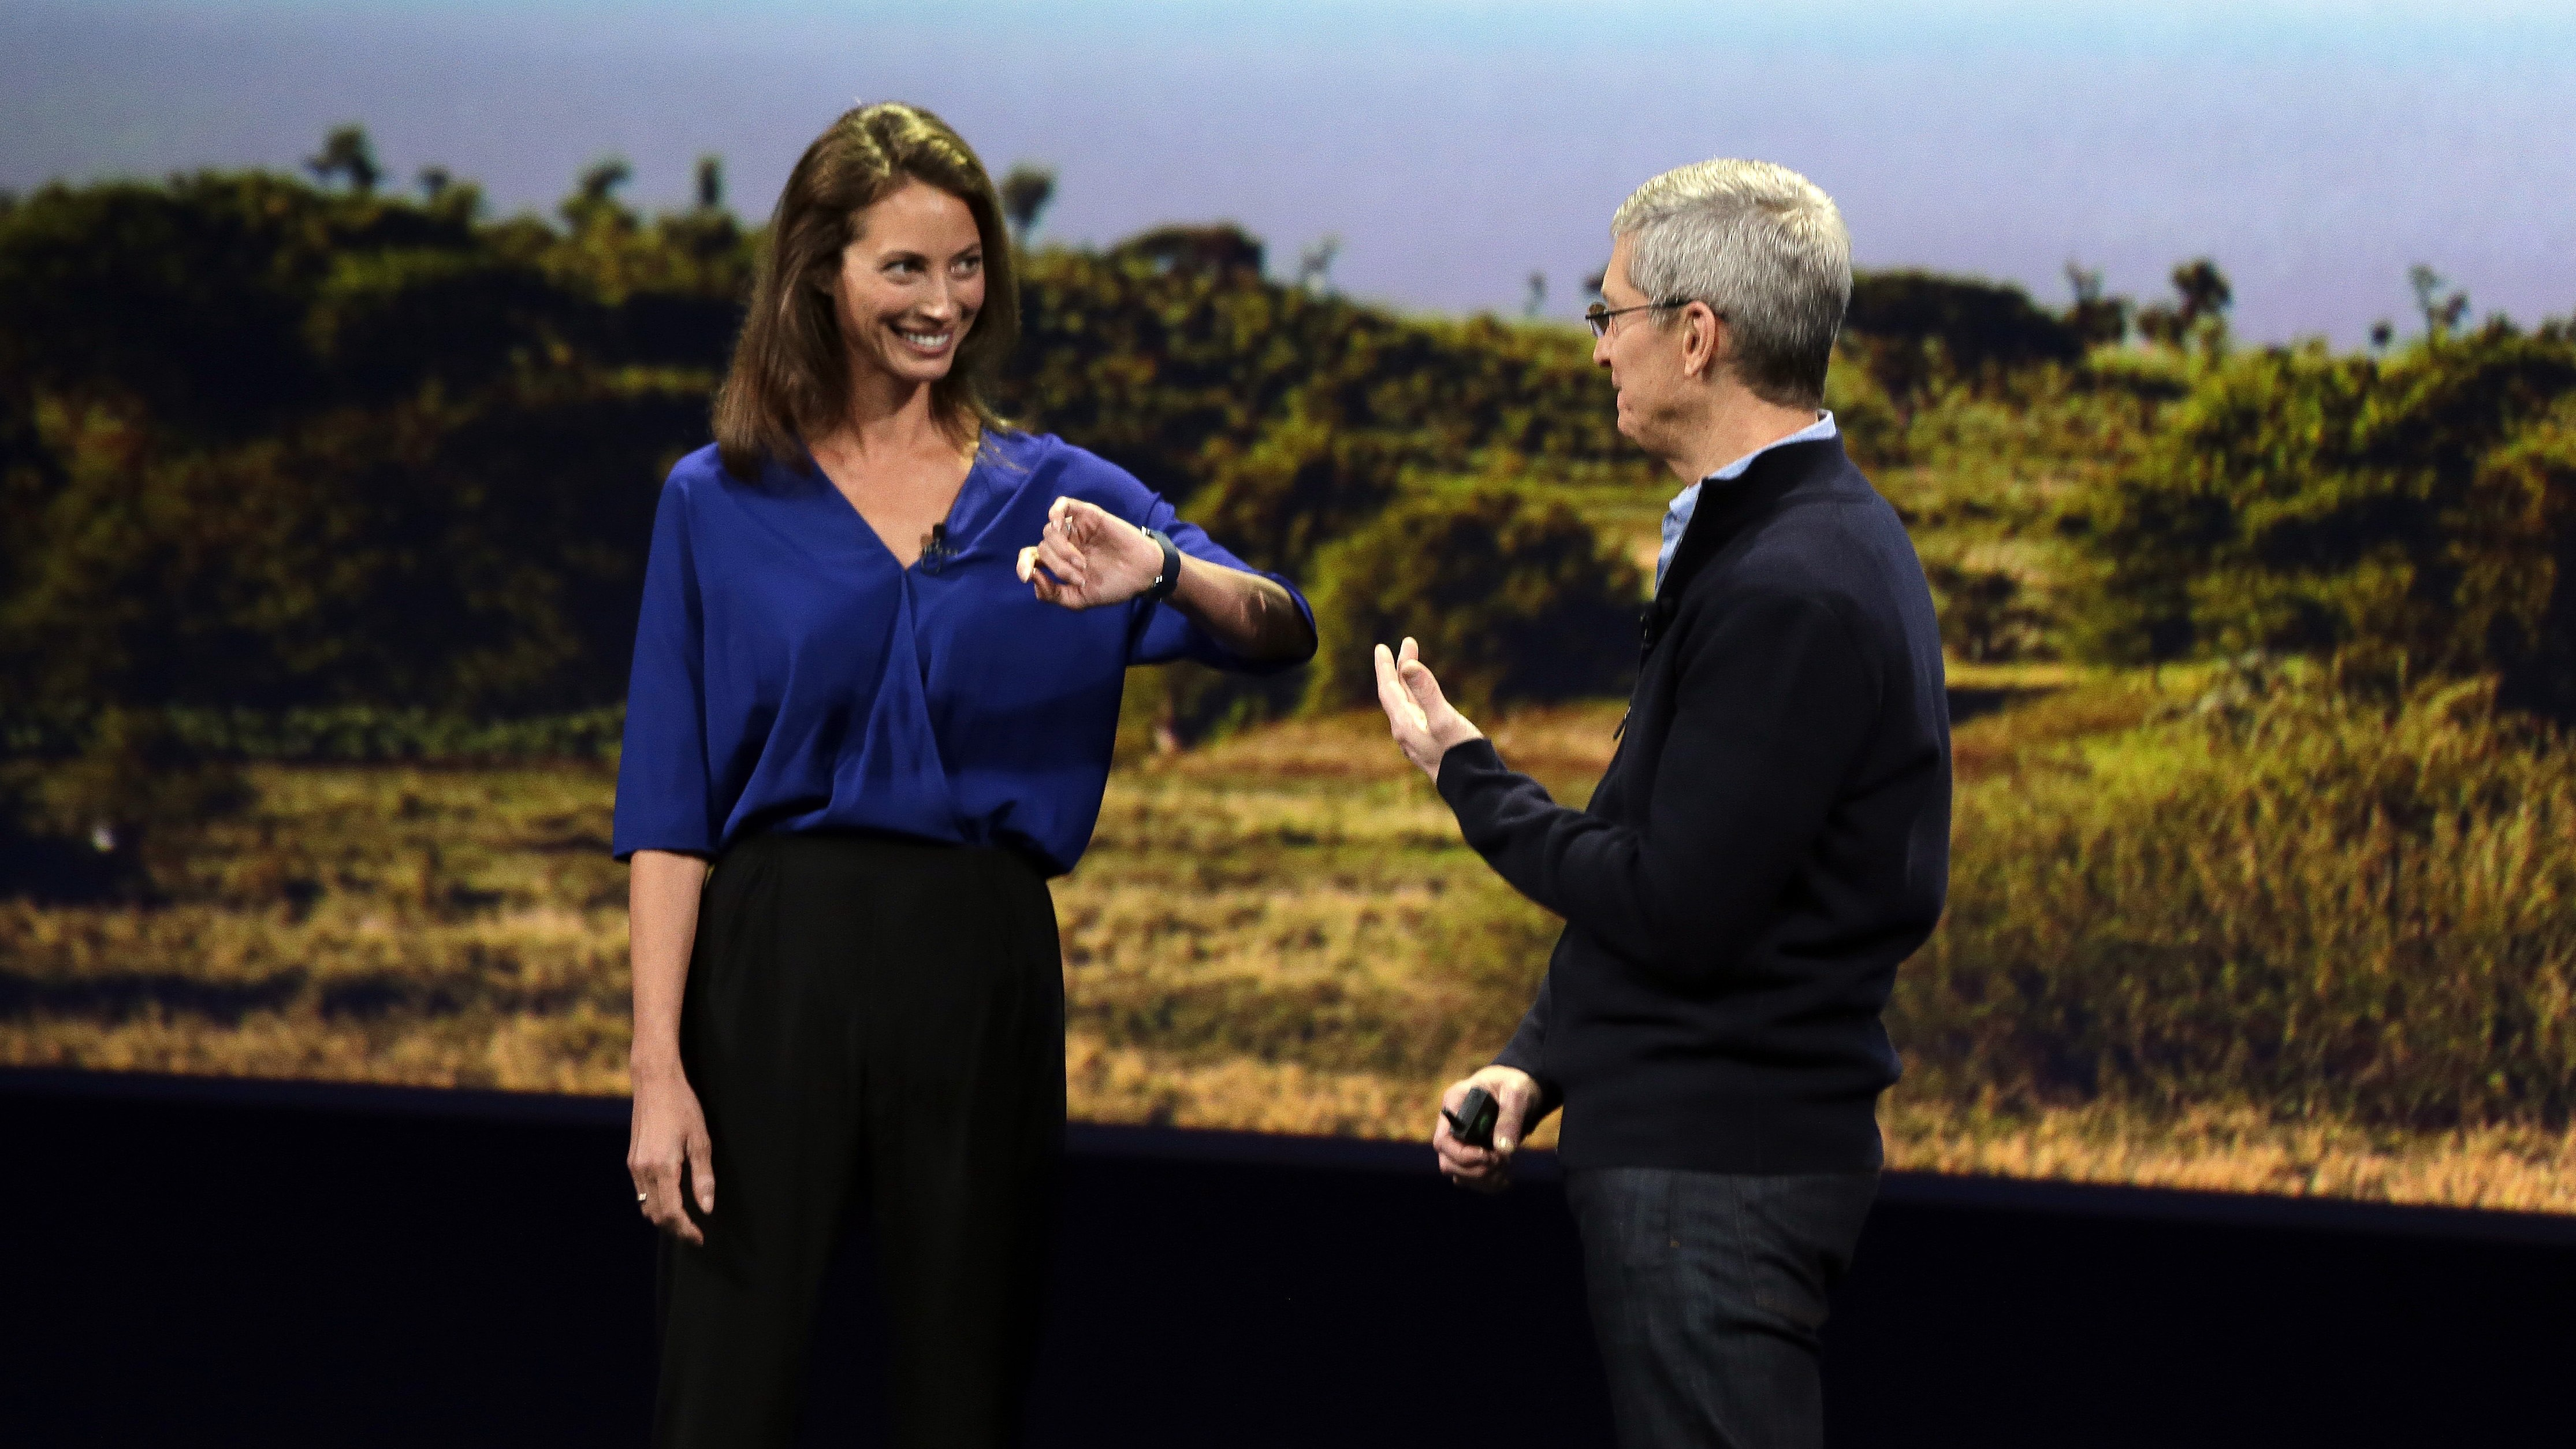 Apple CEO Tim Cook, right, and Christy Turlington Burns, founder of Every Mother Counts, discuss the new Apple Watch on Monday, March 9, 2015, in San Francisco, Calif. (AP Photo/Eric Risberg)